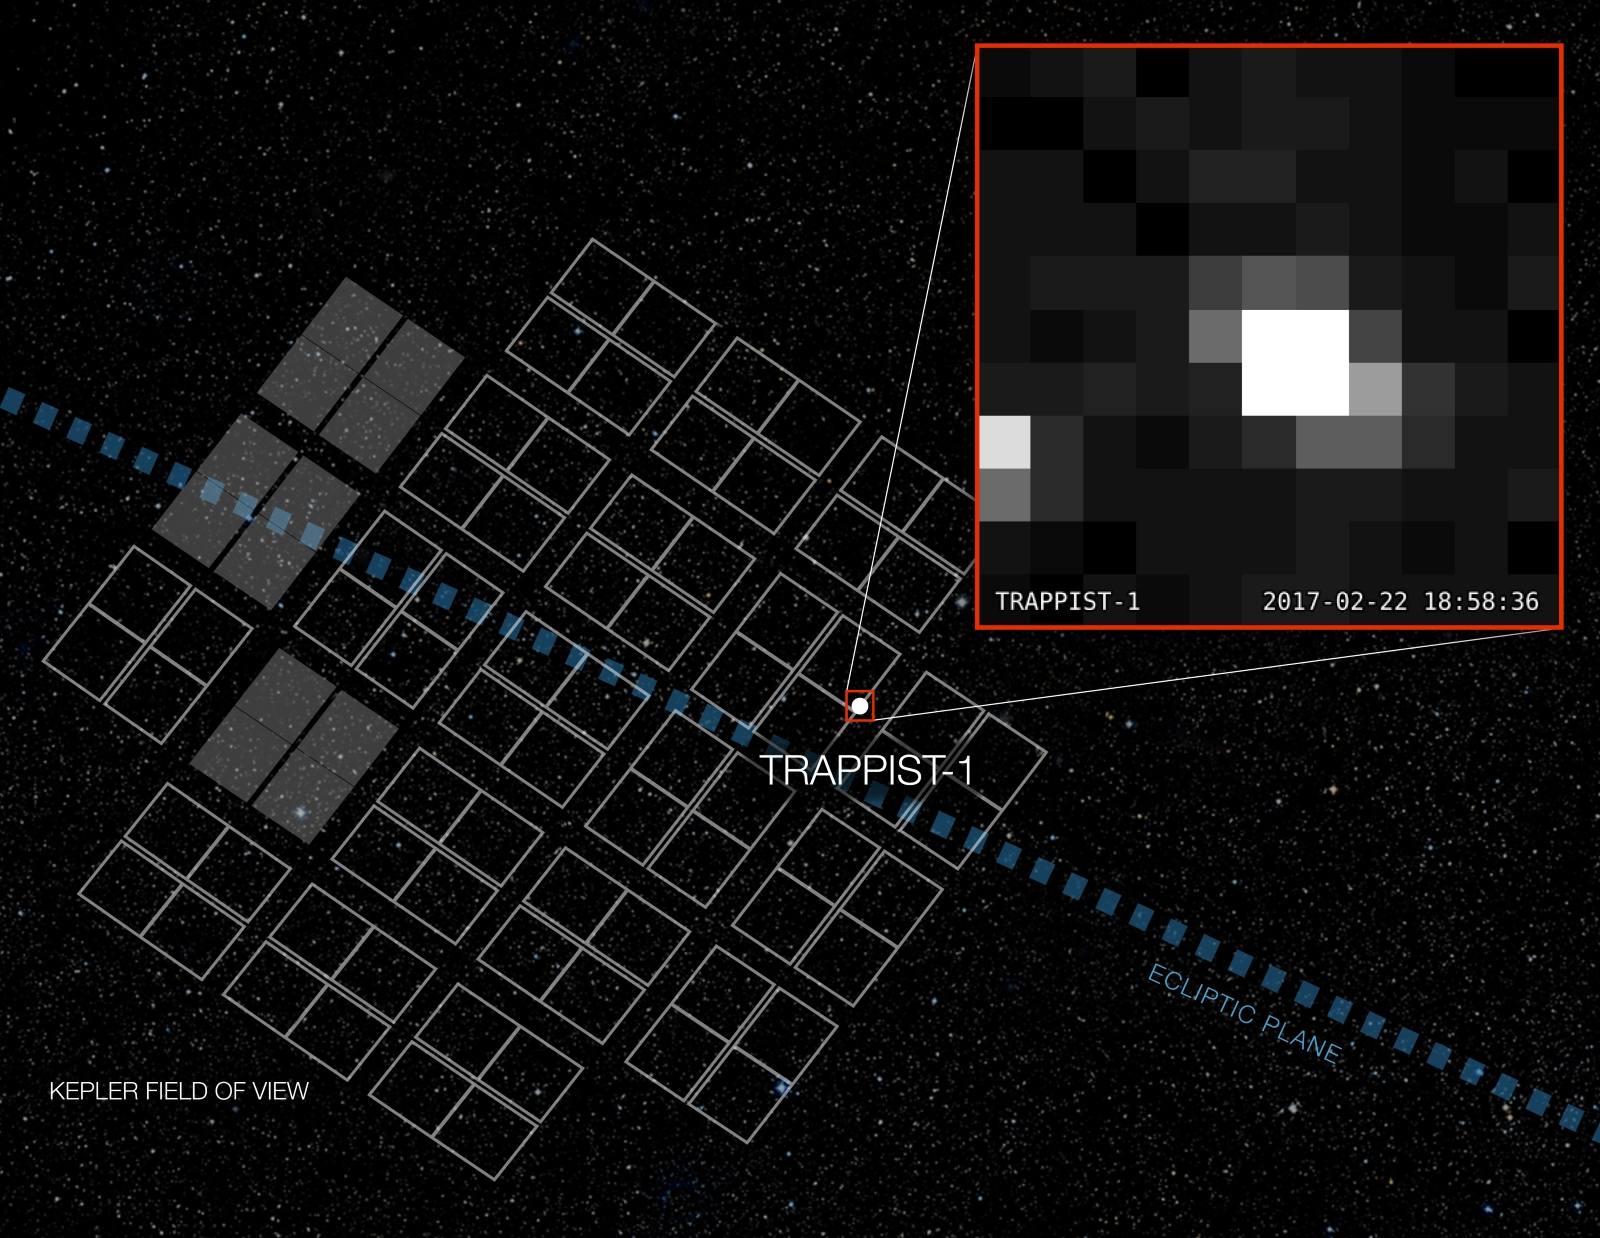 NASA: Kepler Space Telescope 'Stable' After Emergency - Your News Wire